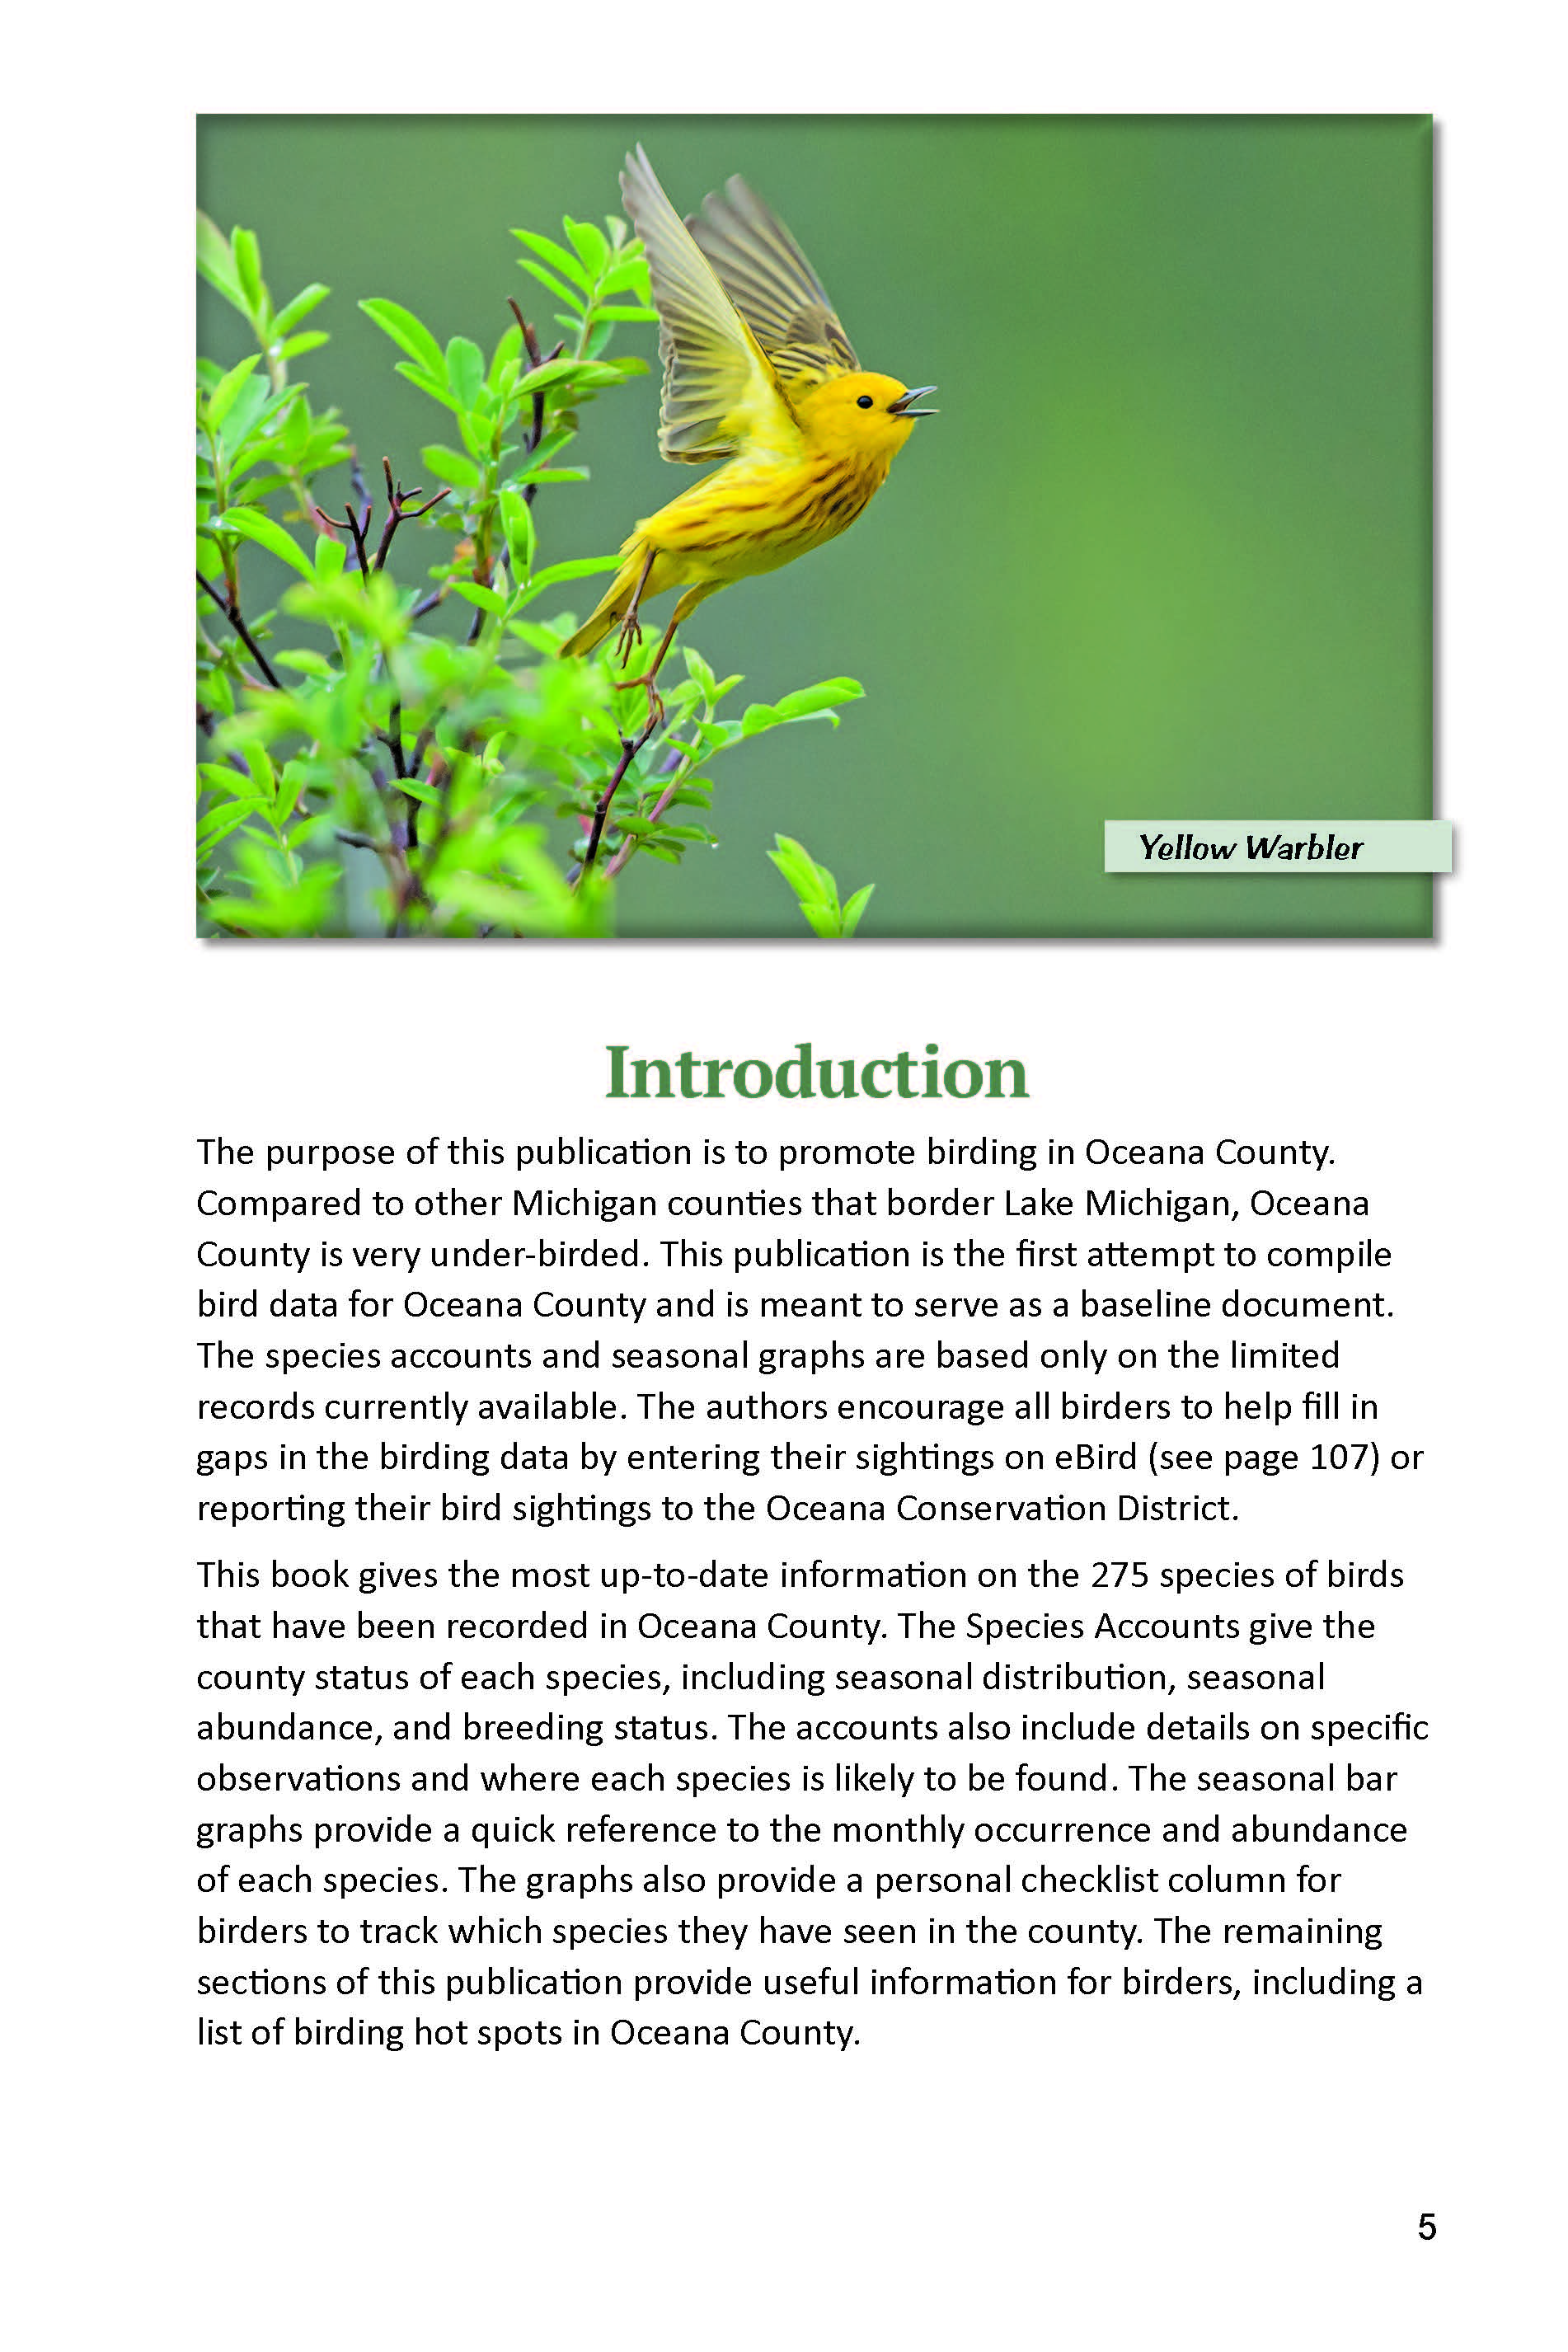 Birding Guide to OC_FINAL_Page_006.jpg